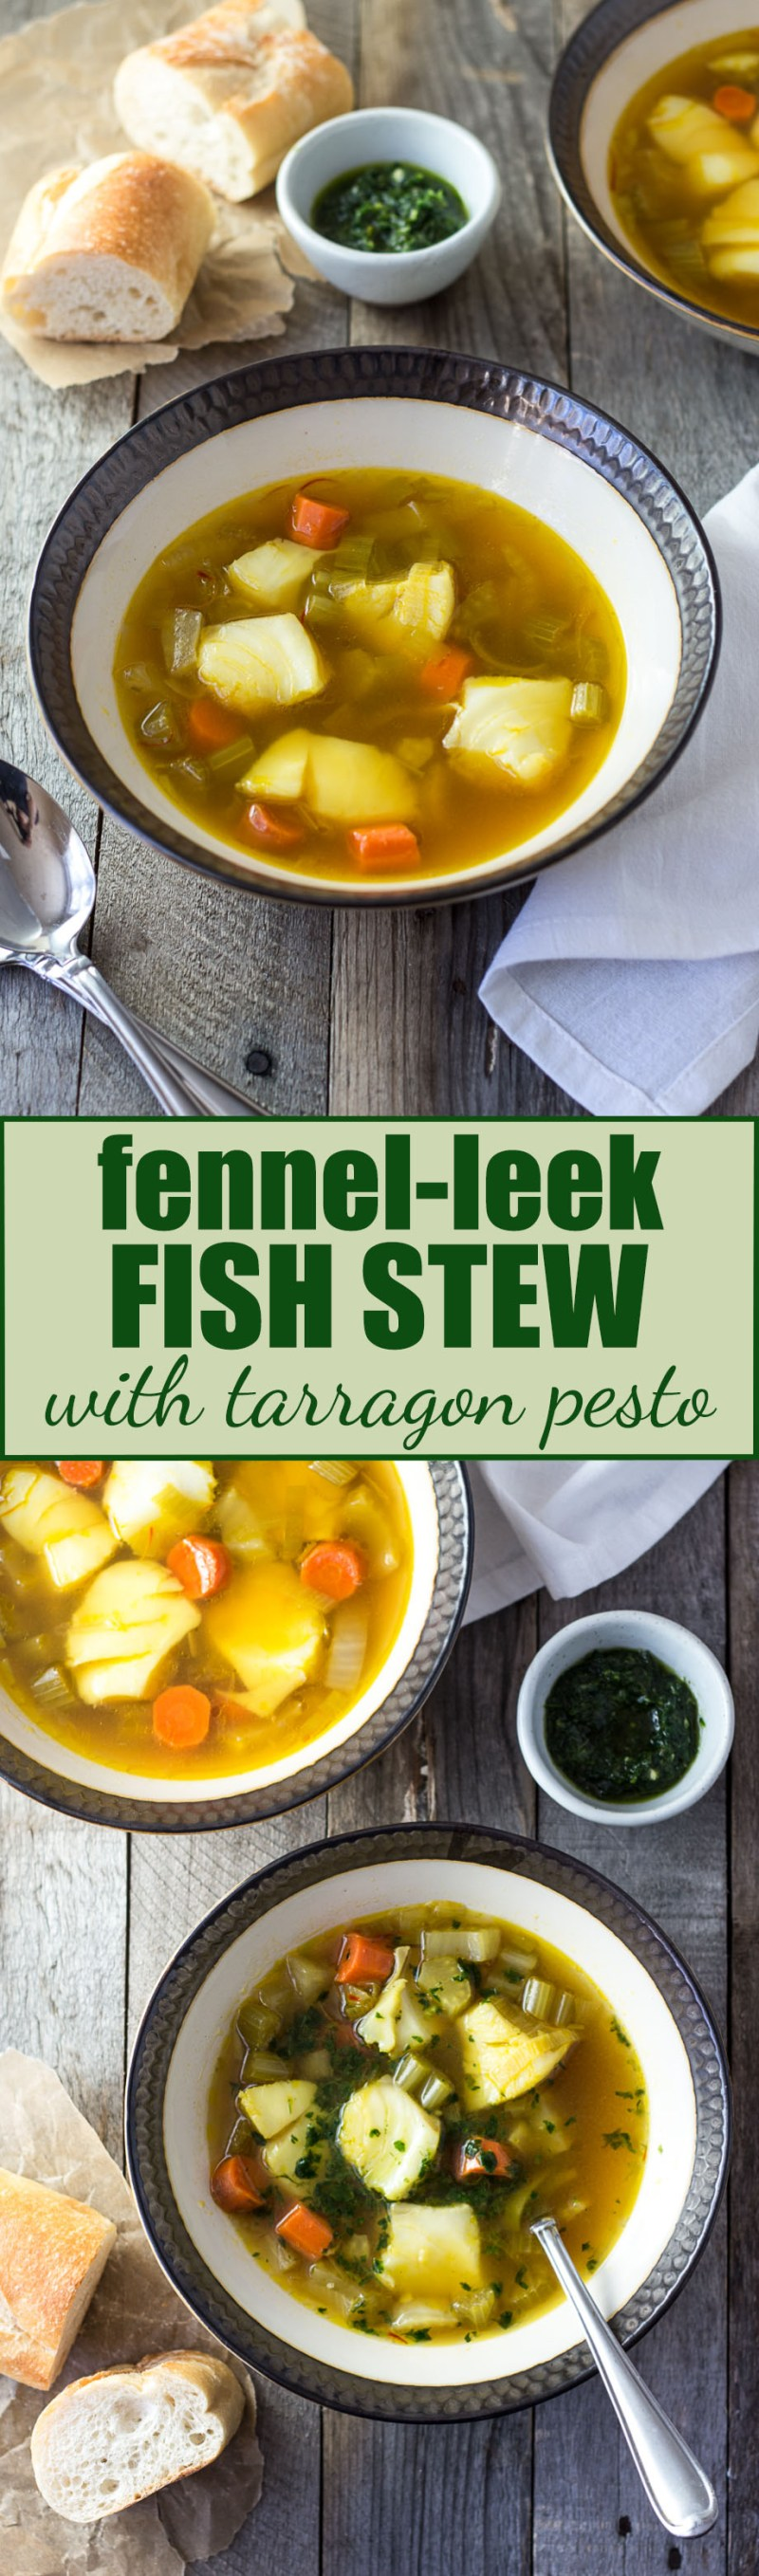 Fennel-Leek Fish Stew with Tarragon Pesto